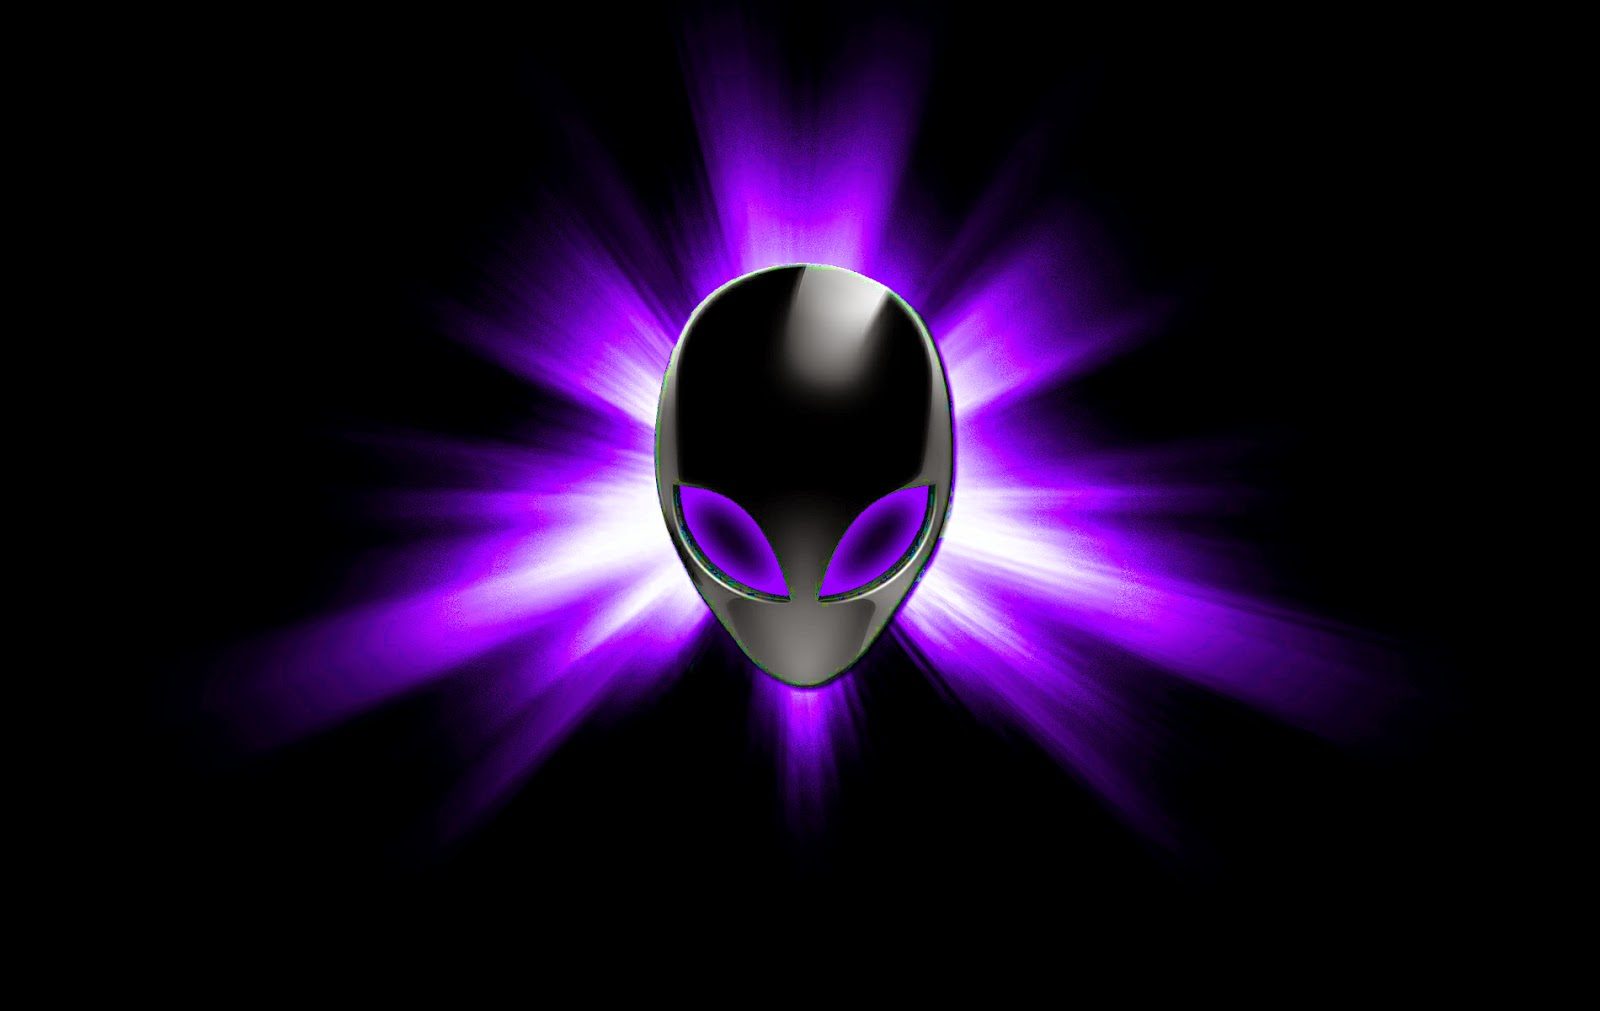 purple alienware hd desktop wallpaper viotabi images